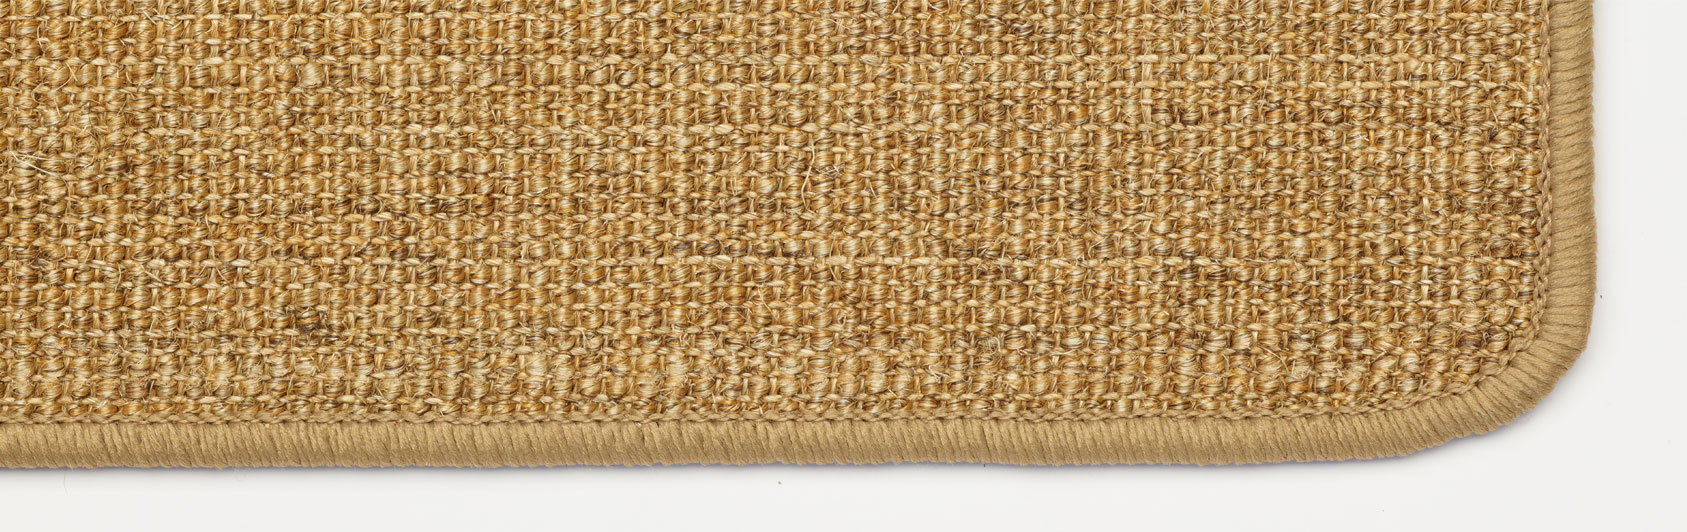 church carpet sisal color tobacco color code 7408